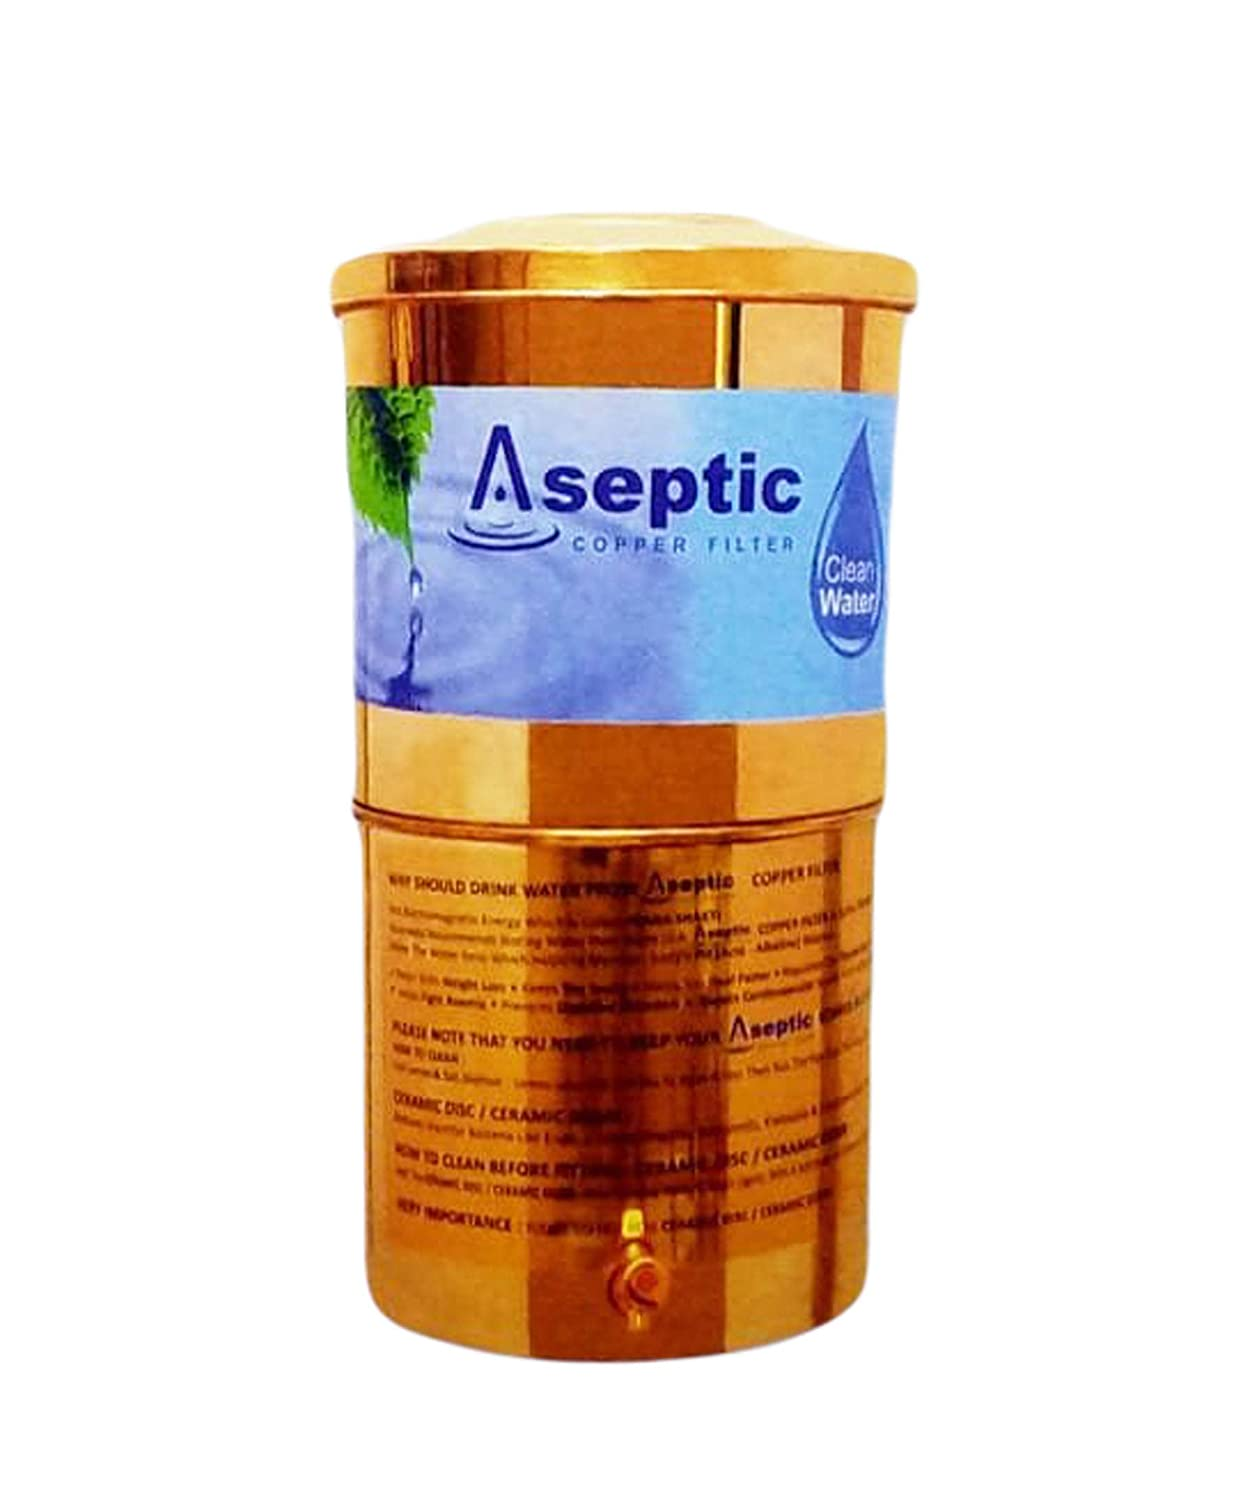 Aseptic Ltr Copper Water Filter 36 Liters Amazon In Home Kitchen